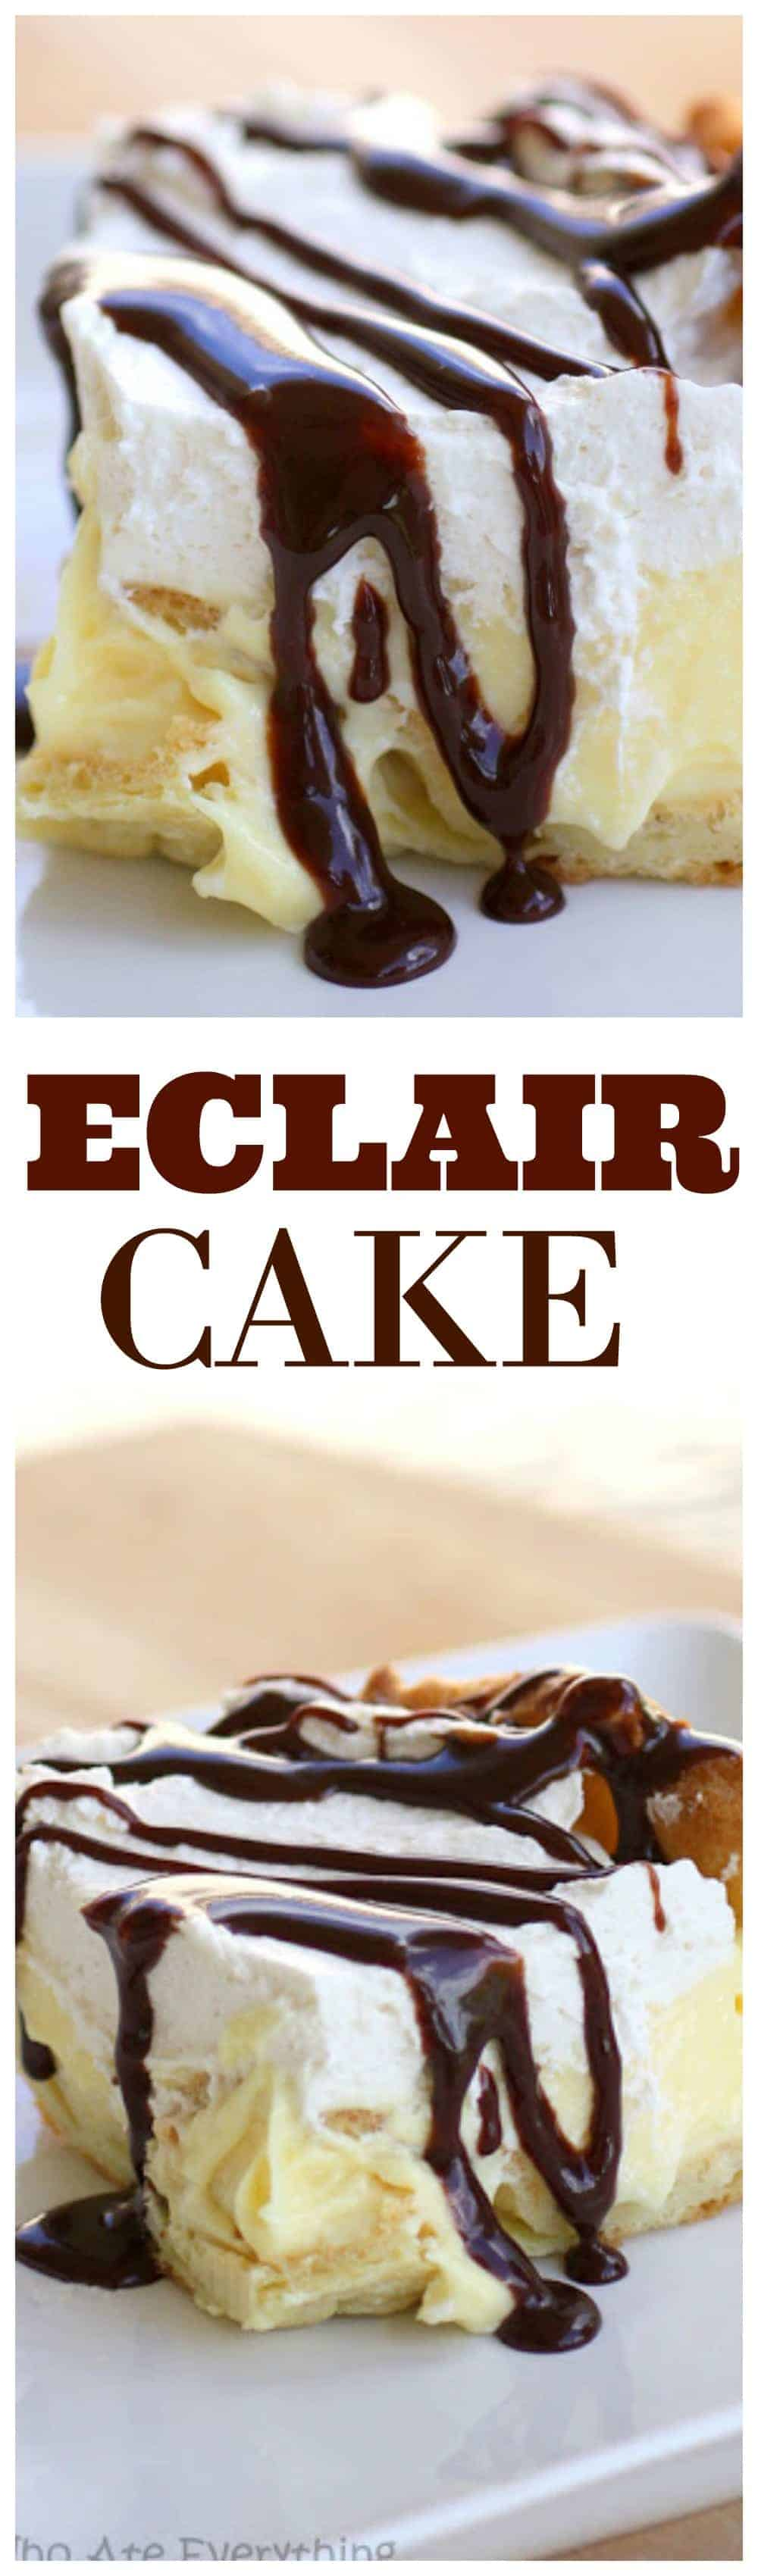 Chocolate Eclair Cake - The Girl Who Ate Everything